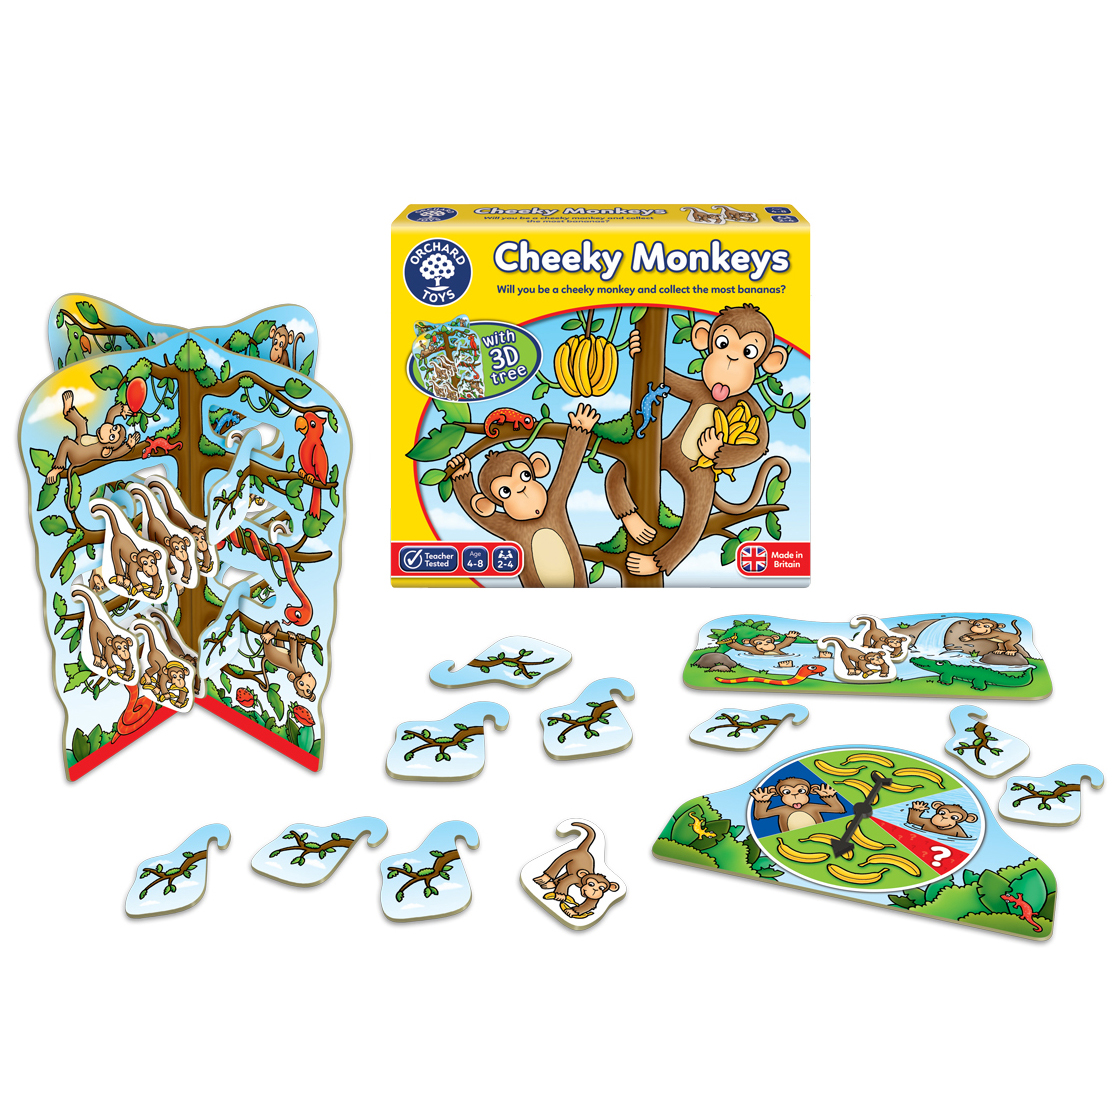 068 Cheeky Monkeys PKG 160916